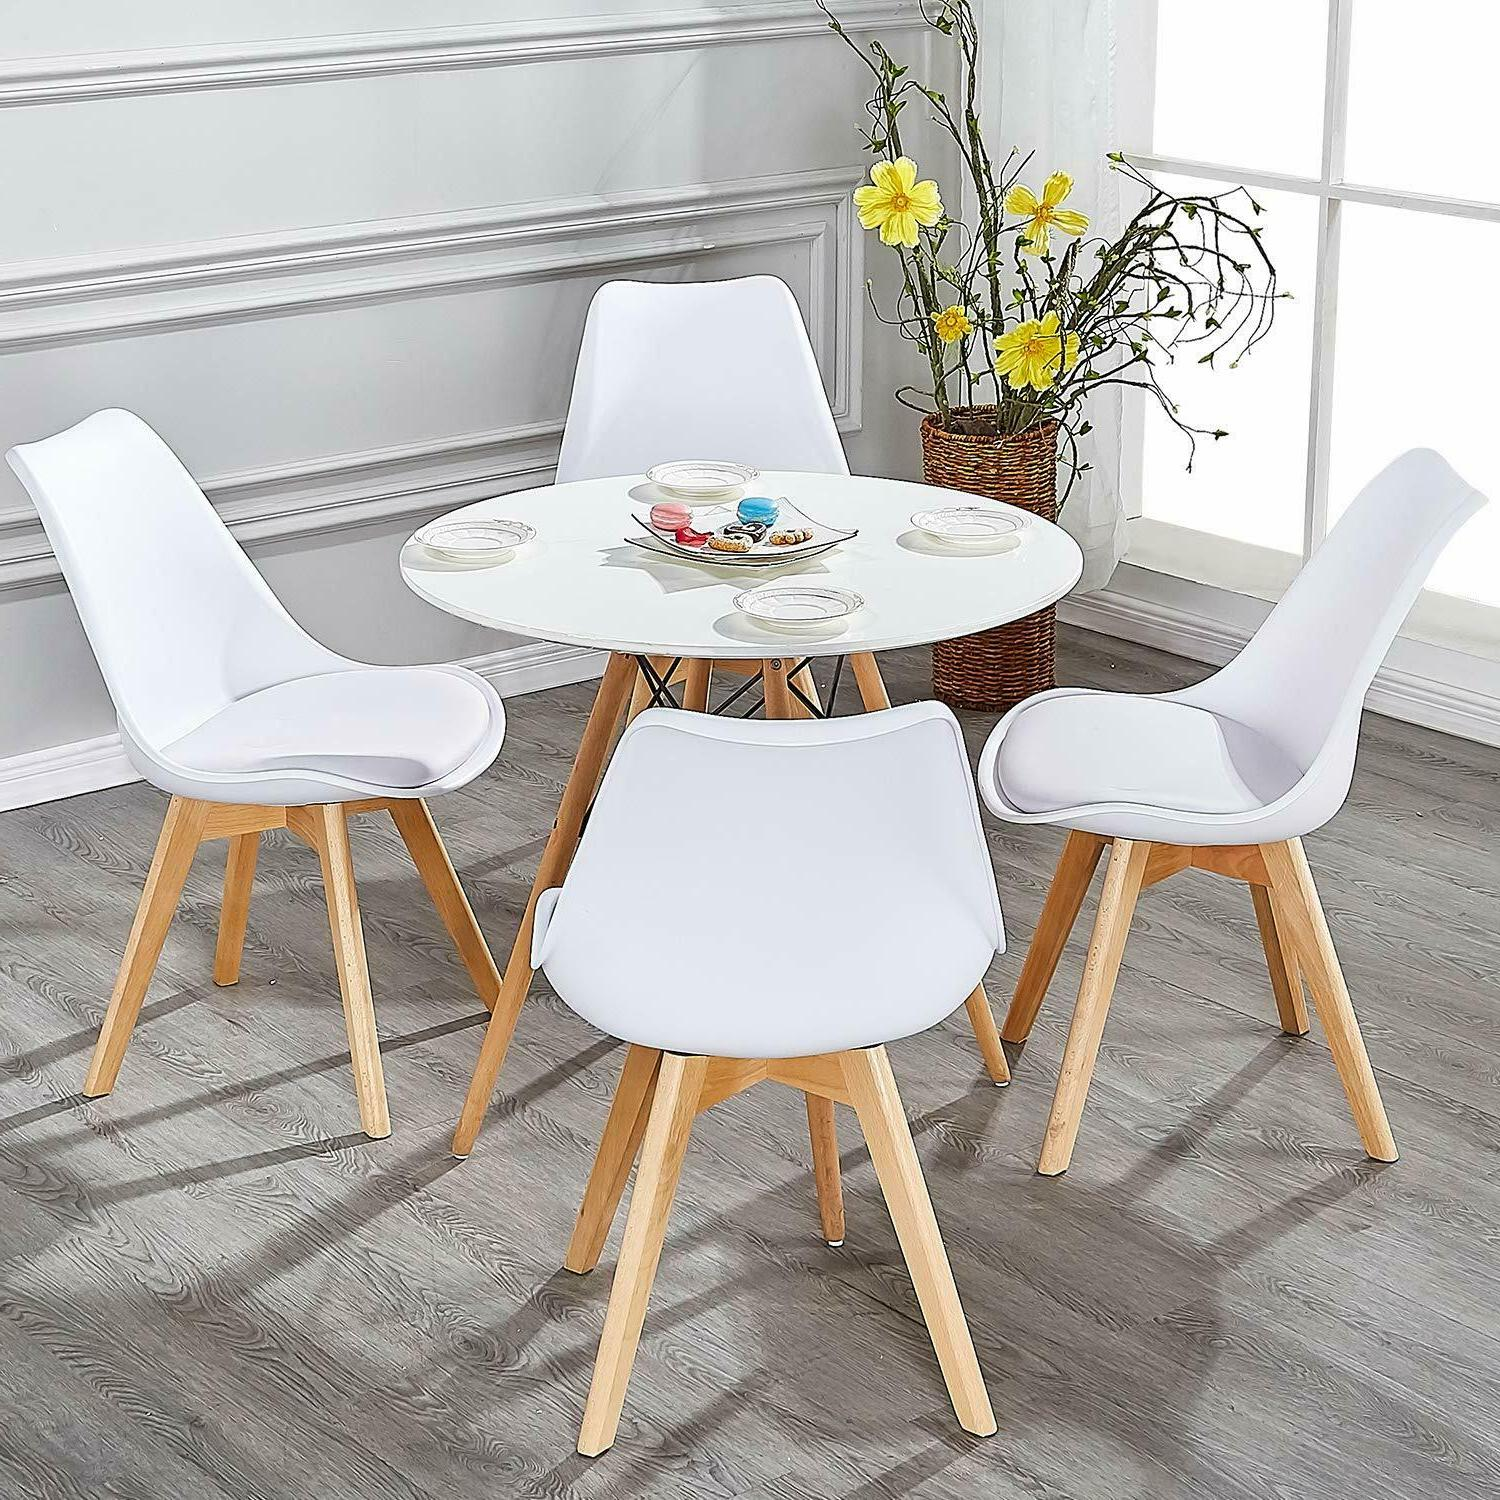 Dining Side Durable Wooden Legs, Set 4, White